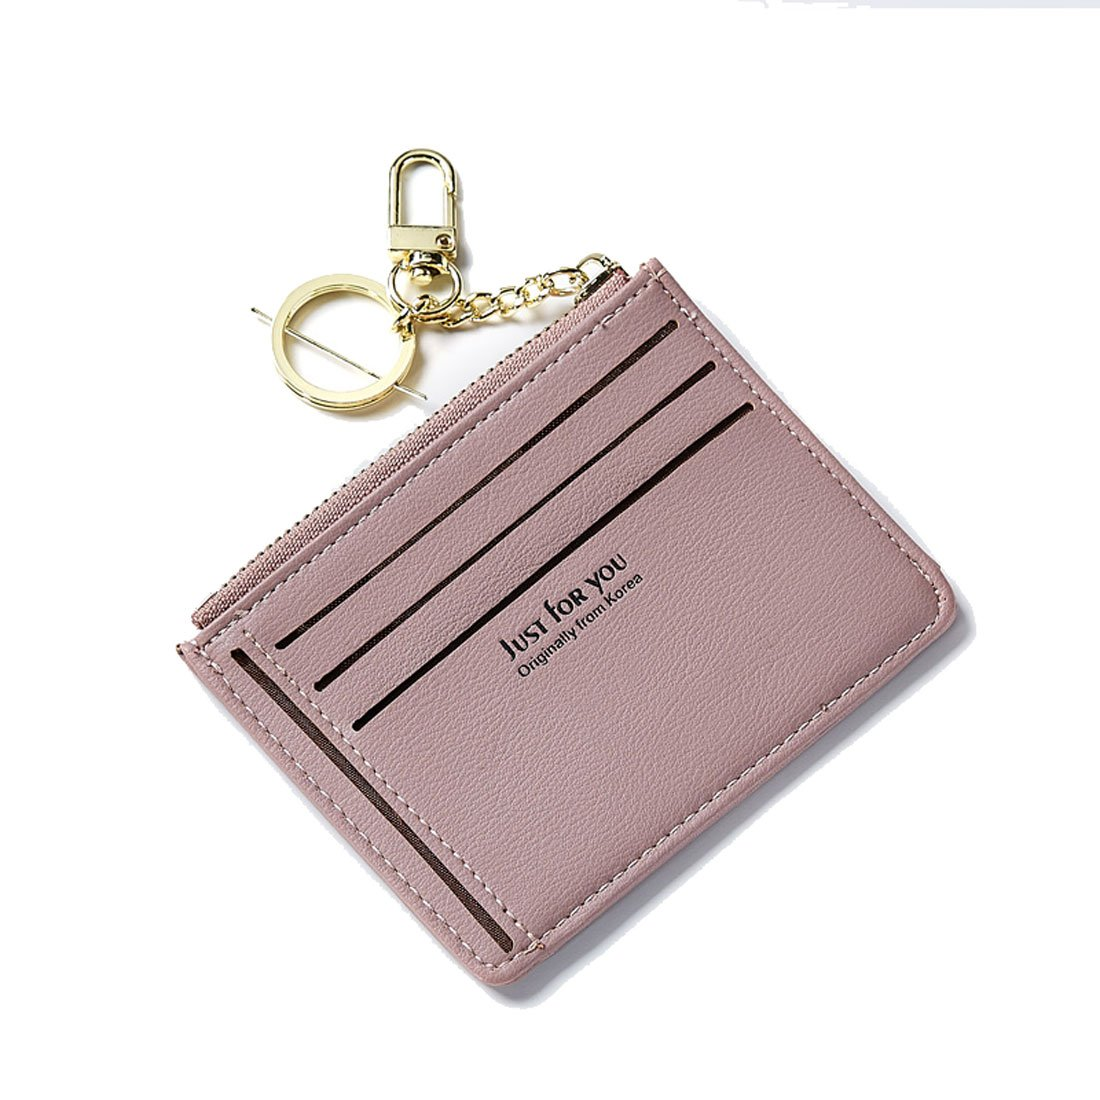 Slim Wallet Women Cute Purse Super Thin Card Holder Compact Pocket Mini Pouch With ID Card Window Keychain Teengirls Greypink